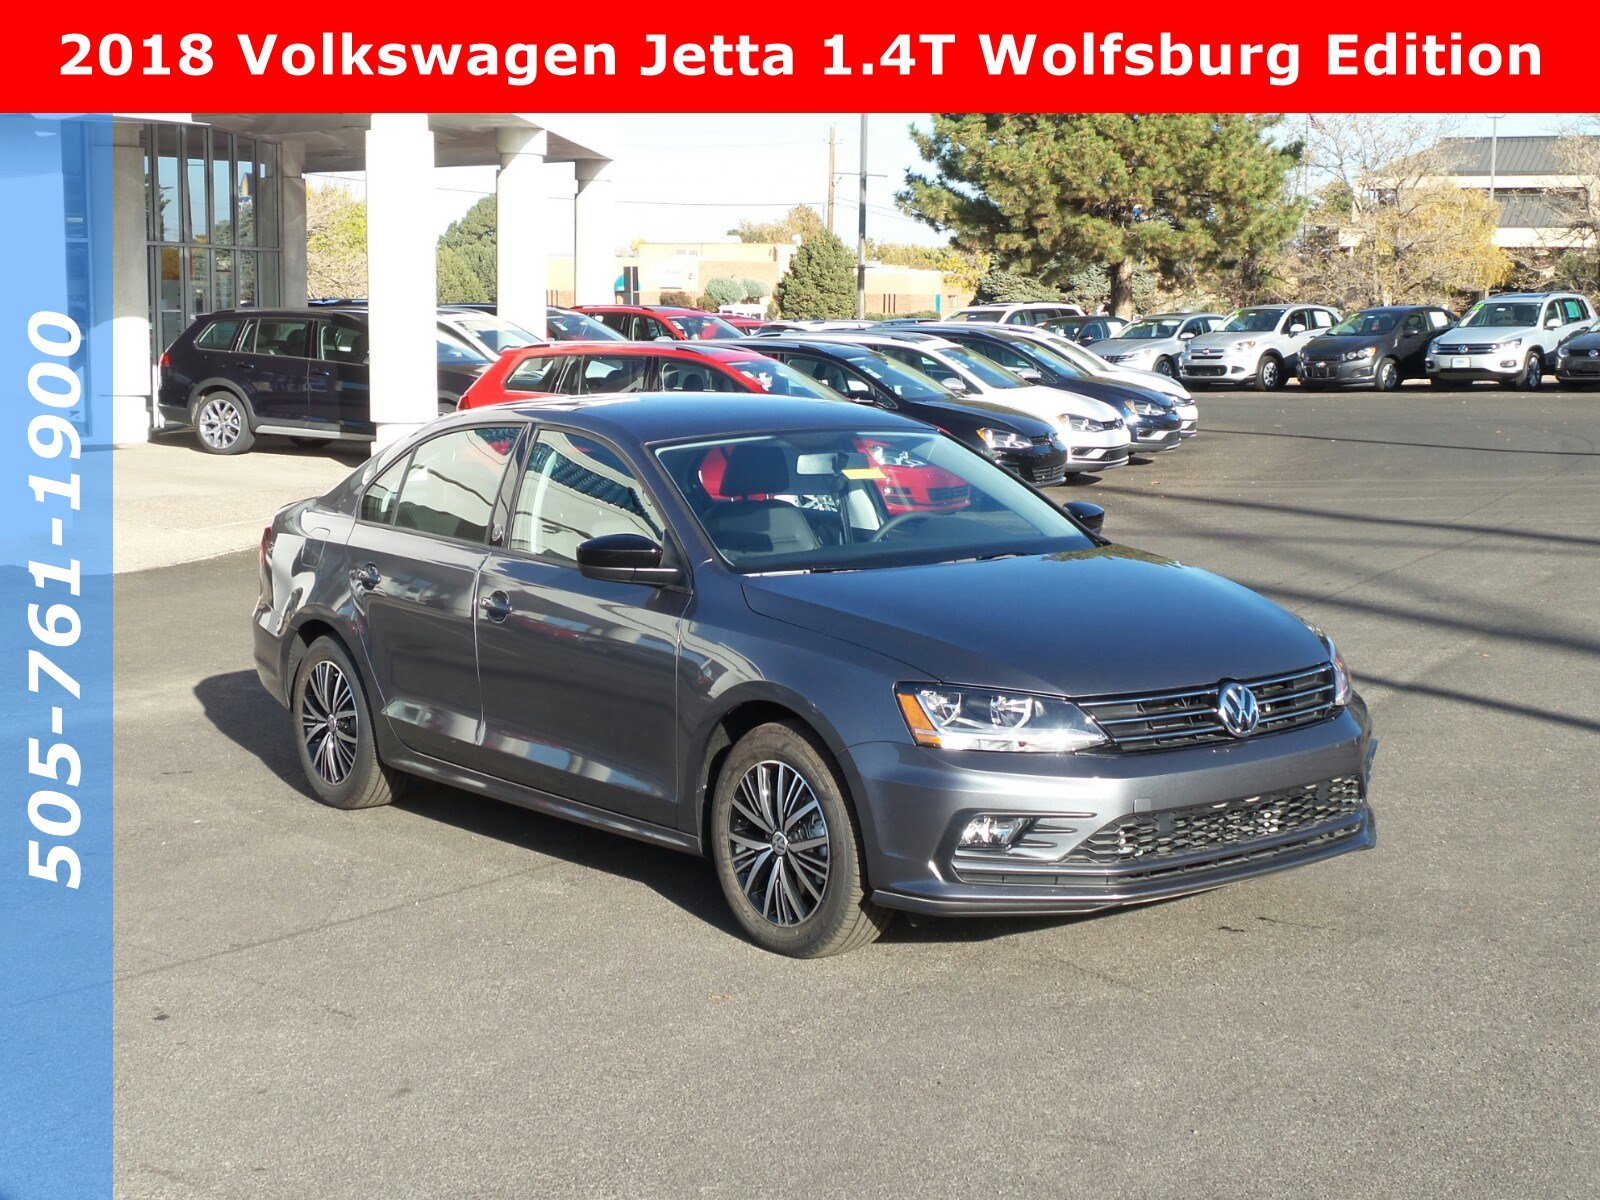 lease vw new beetle image volkswagen albuquerque specials and interior finance original offers deals nm